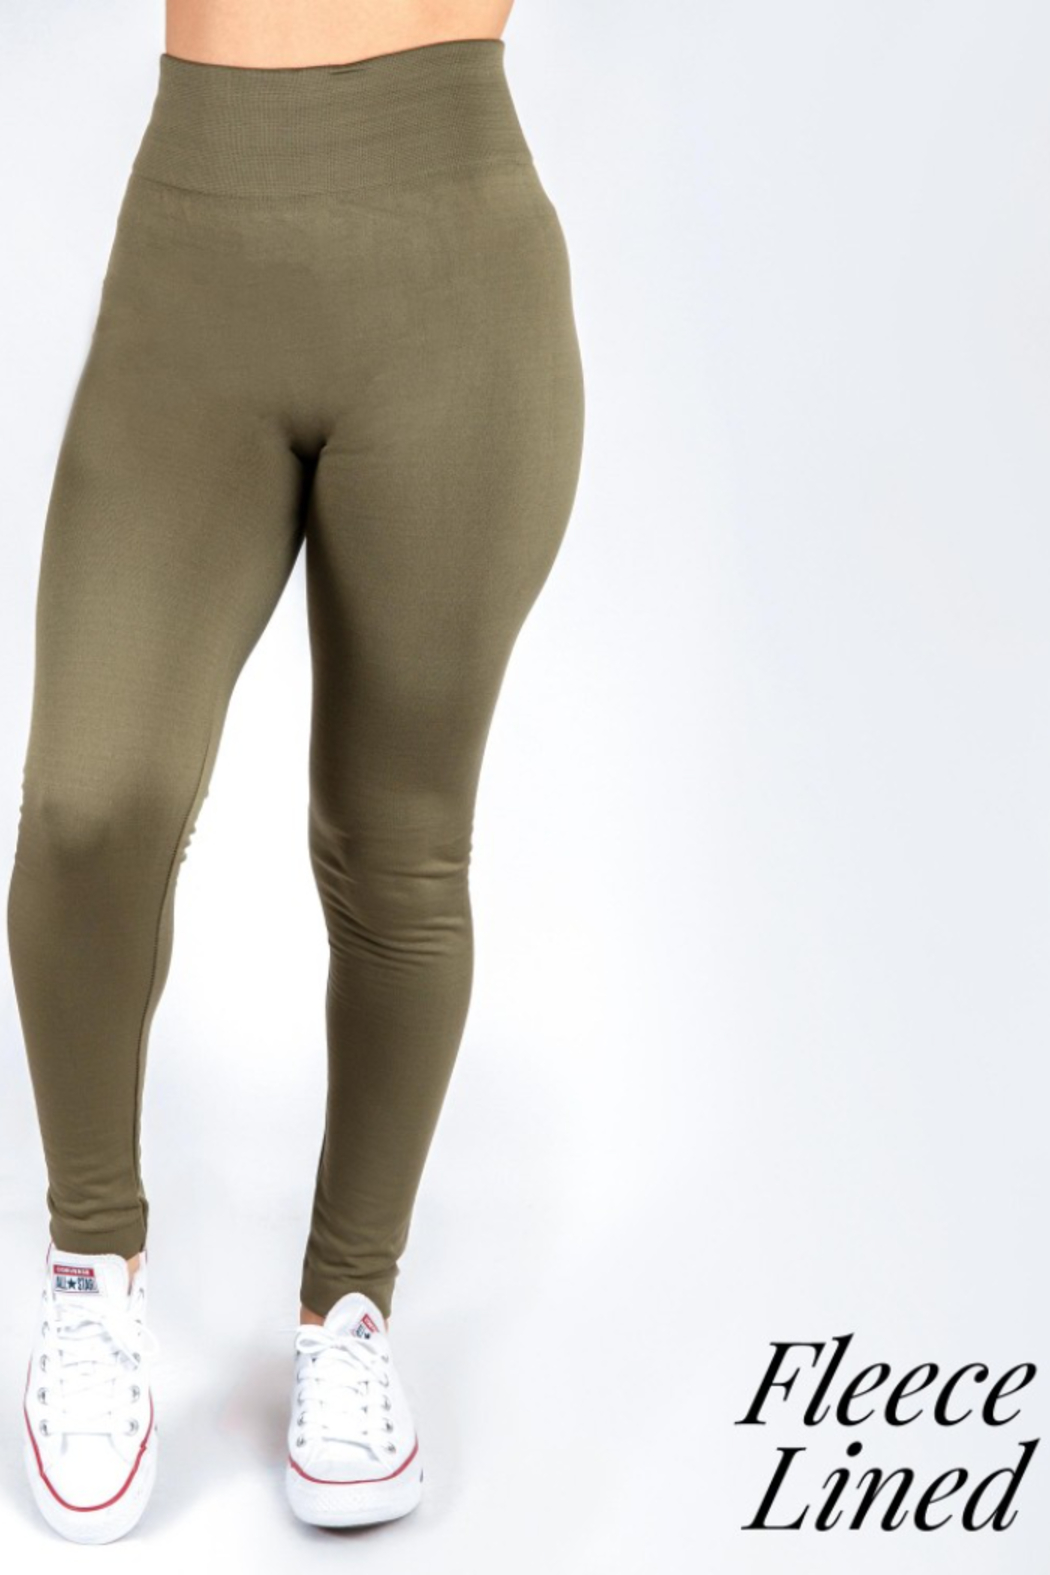 New Mix Women's Solid Color Seamless Fleece Lined Leggings - Front Cropped Image